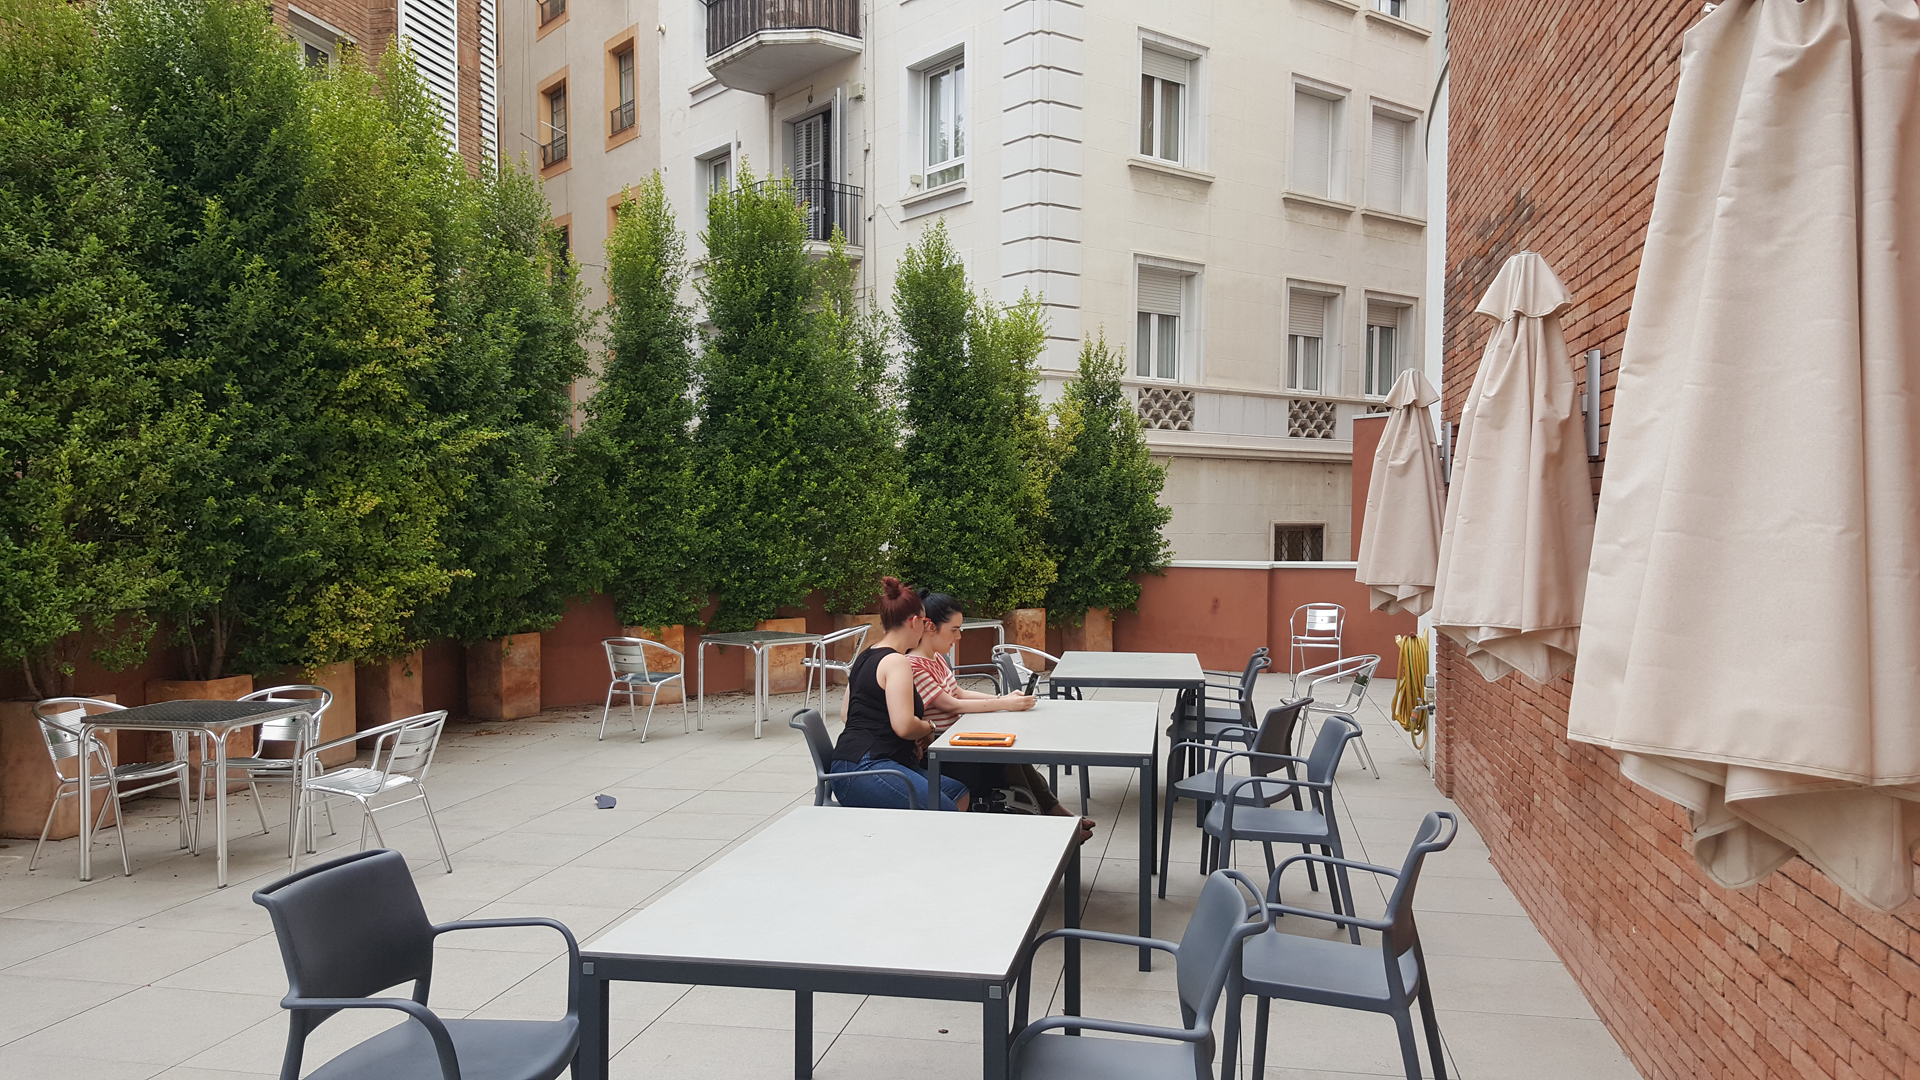 mics-sant-jordi-outdoor-dining-terrace-wheelchair-accessible